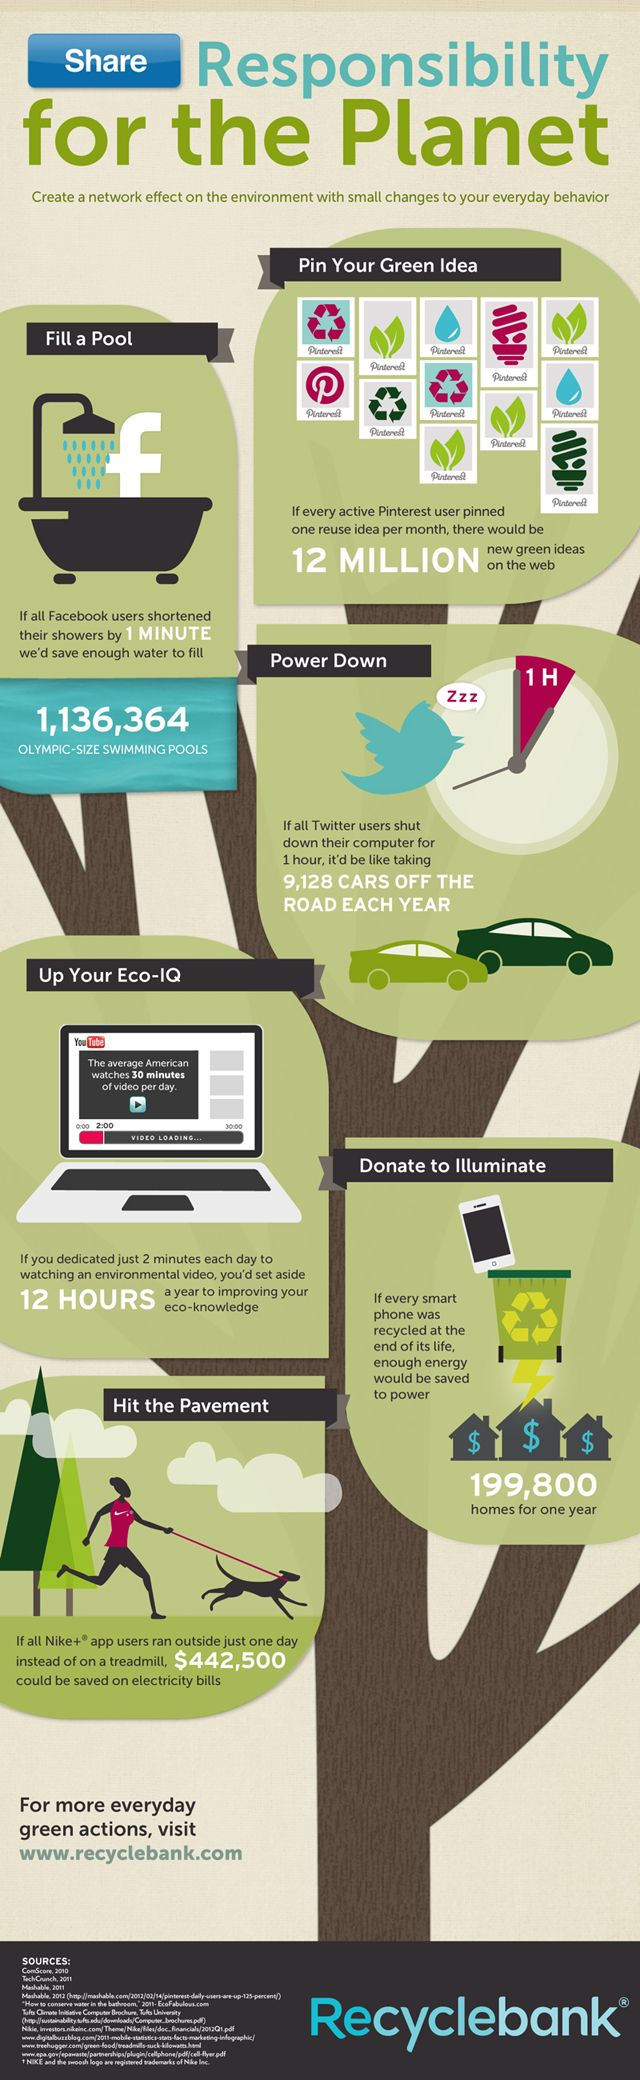 Interesting facts for us social media users! #sustainability